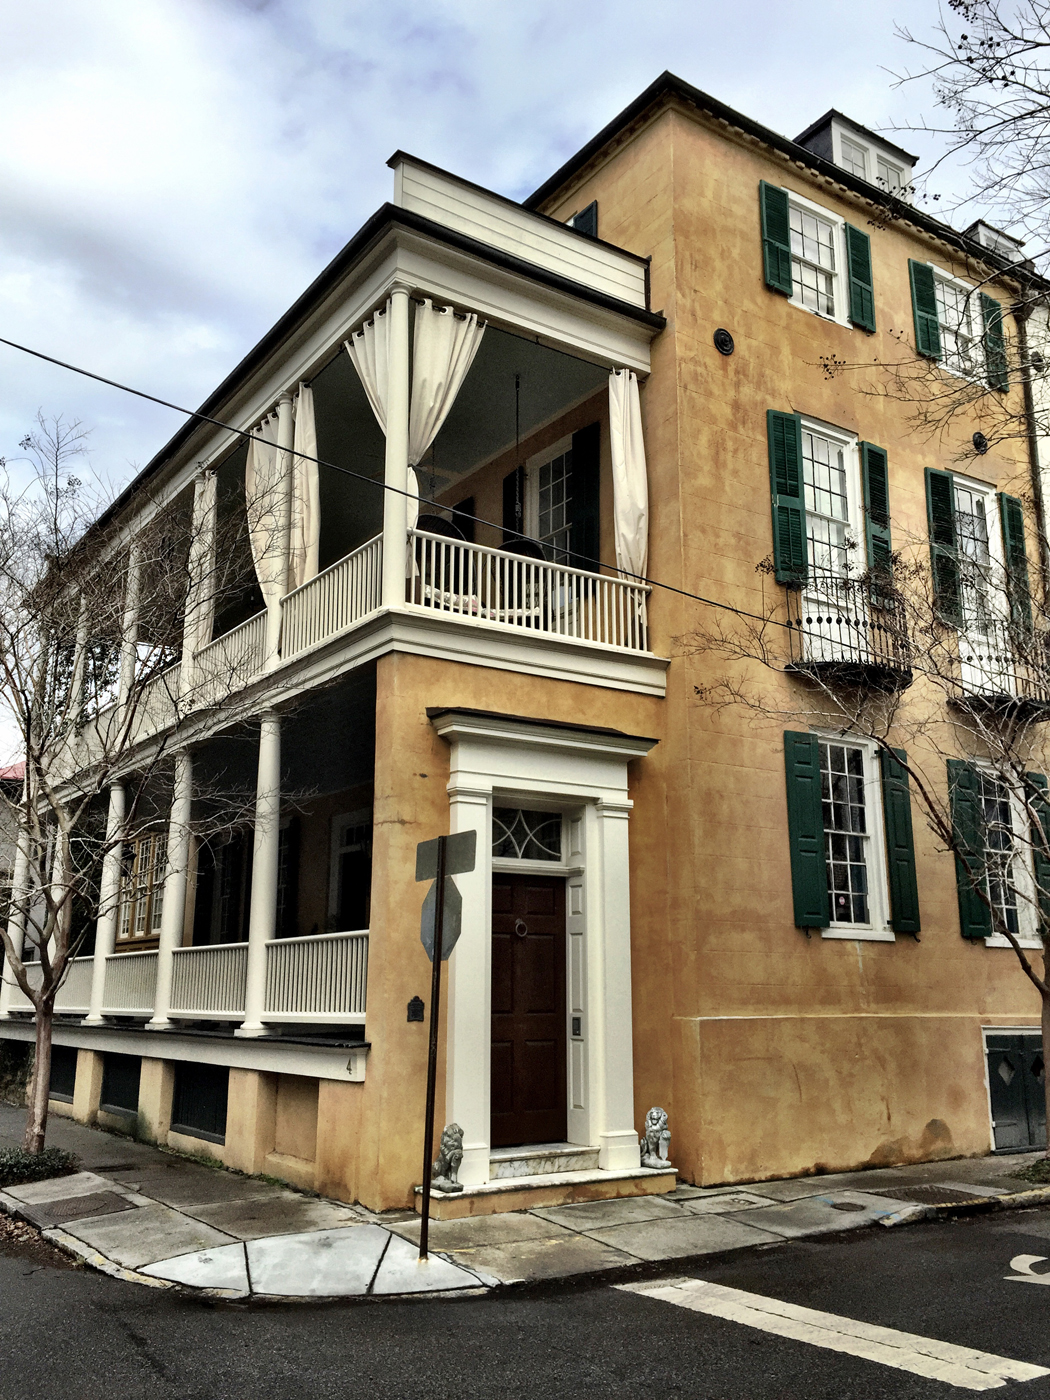 The Charleston single house is the most common building type in Charleston.